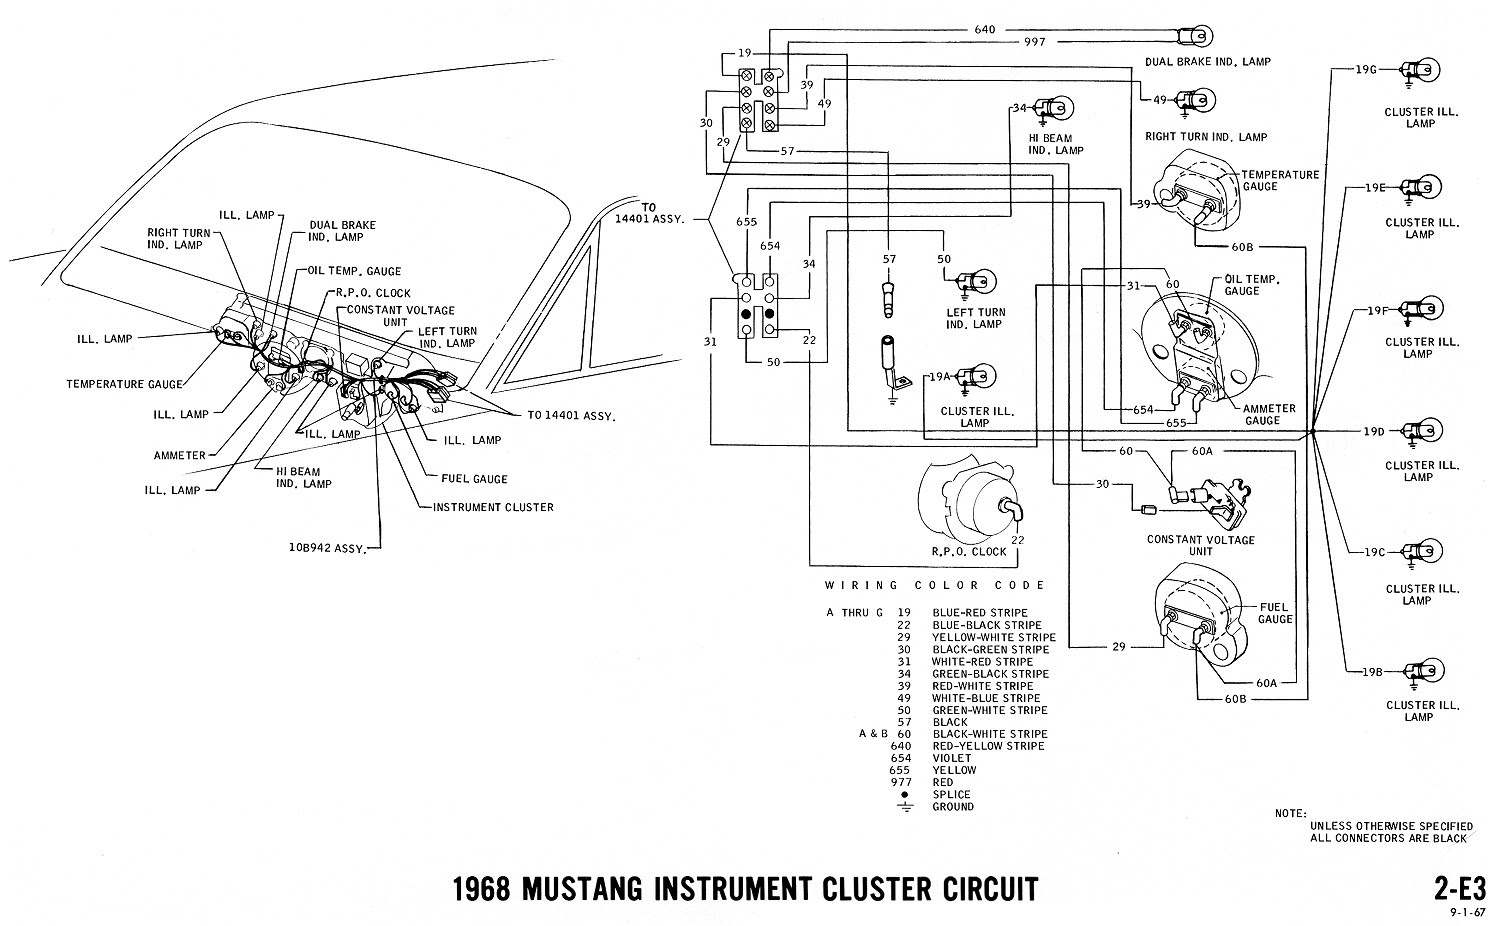 1968 Mustang Wiring Diagram Manual Wiring Diagram Ultimate1 Ultimate1 Musikami It